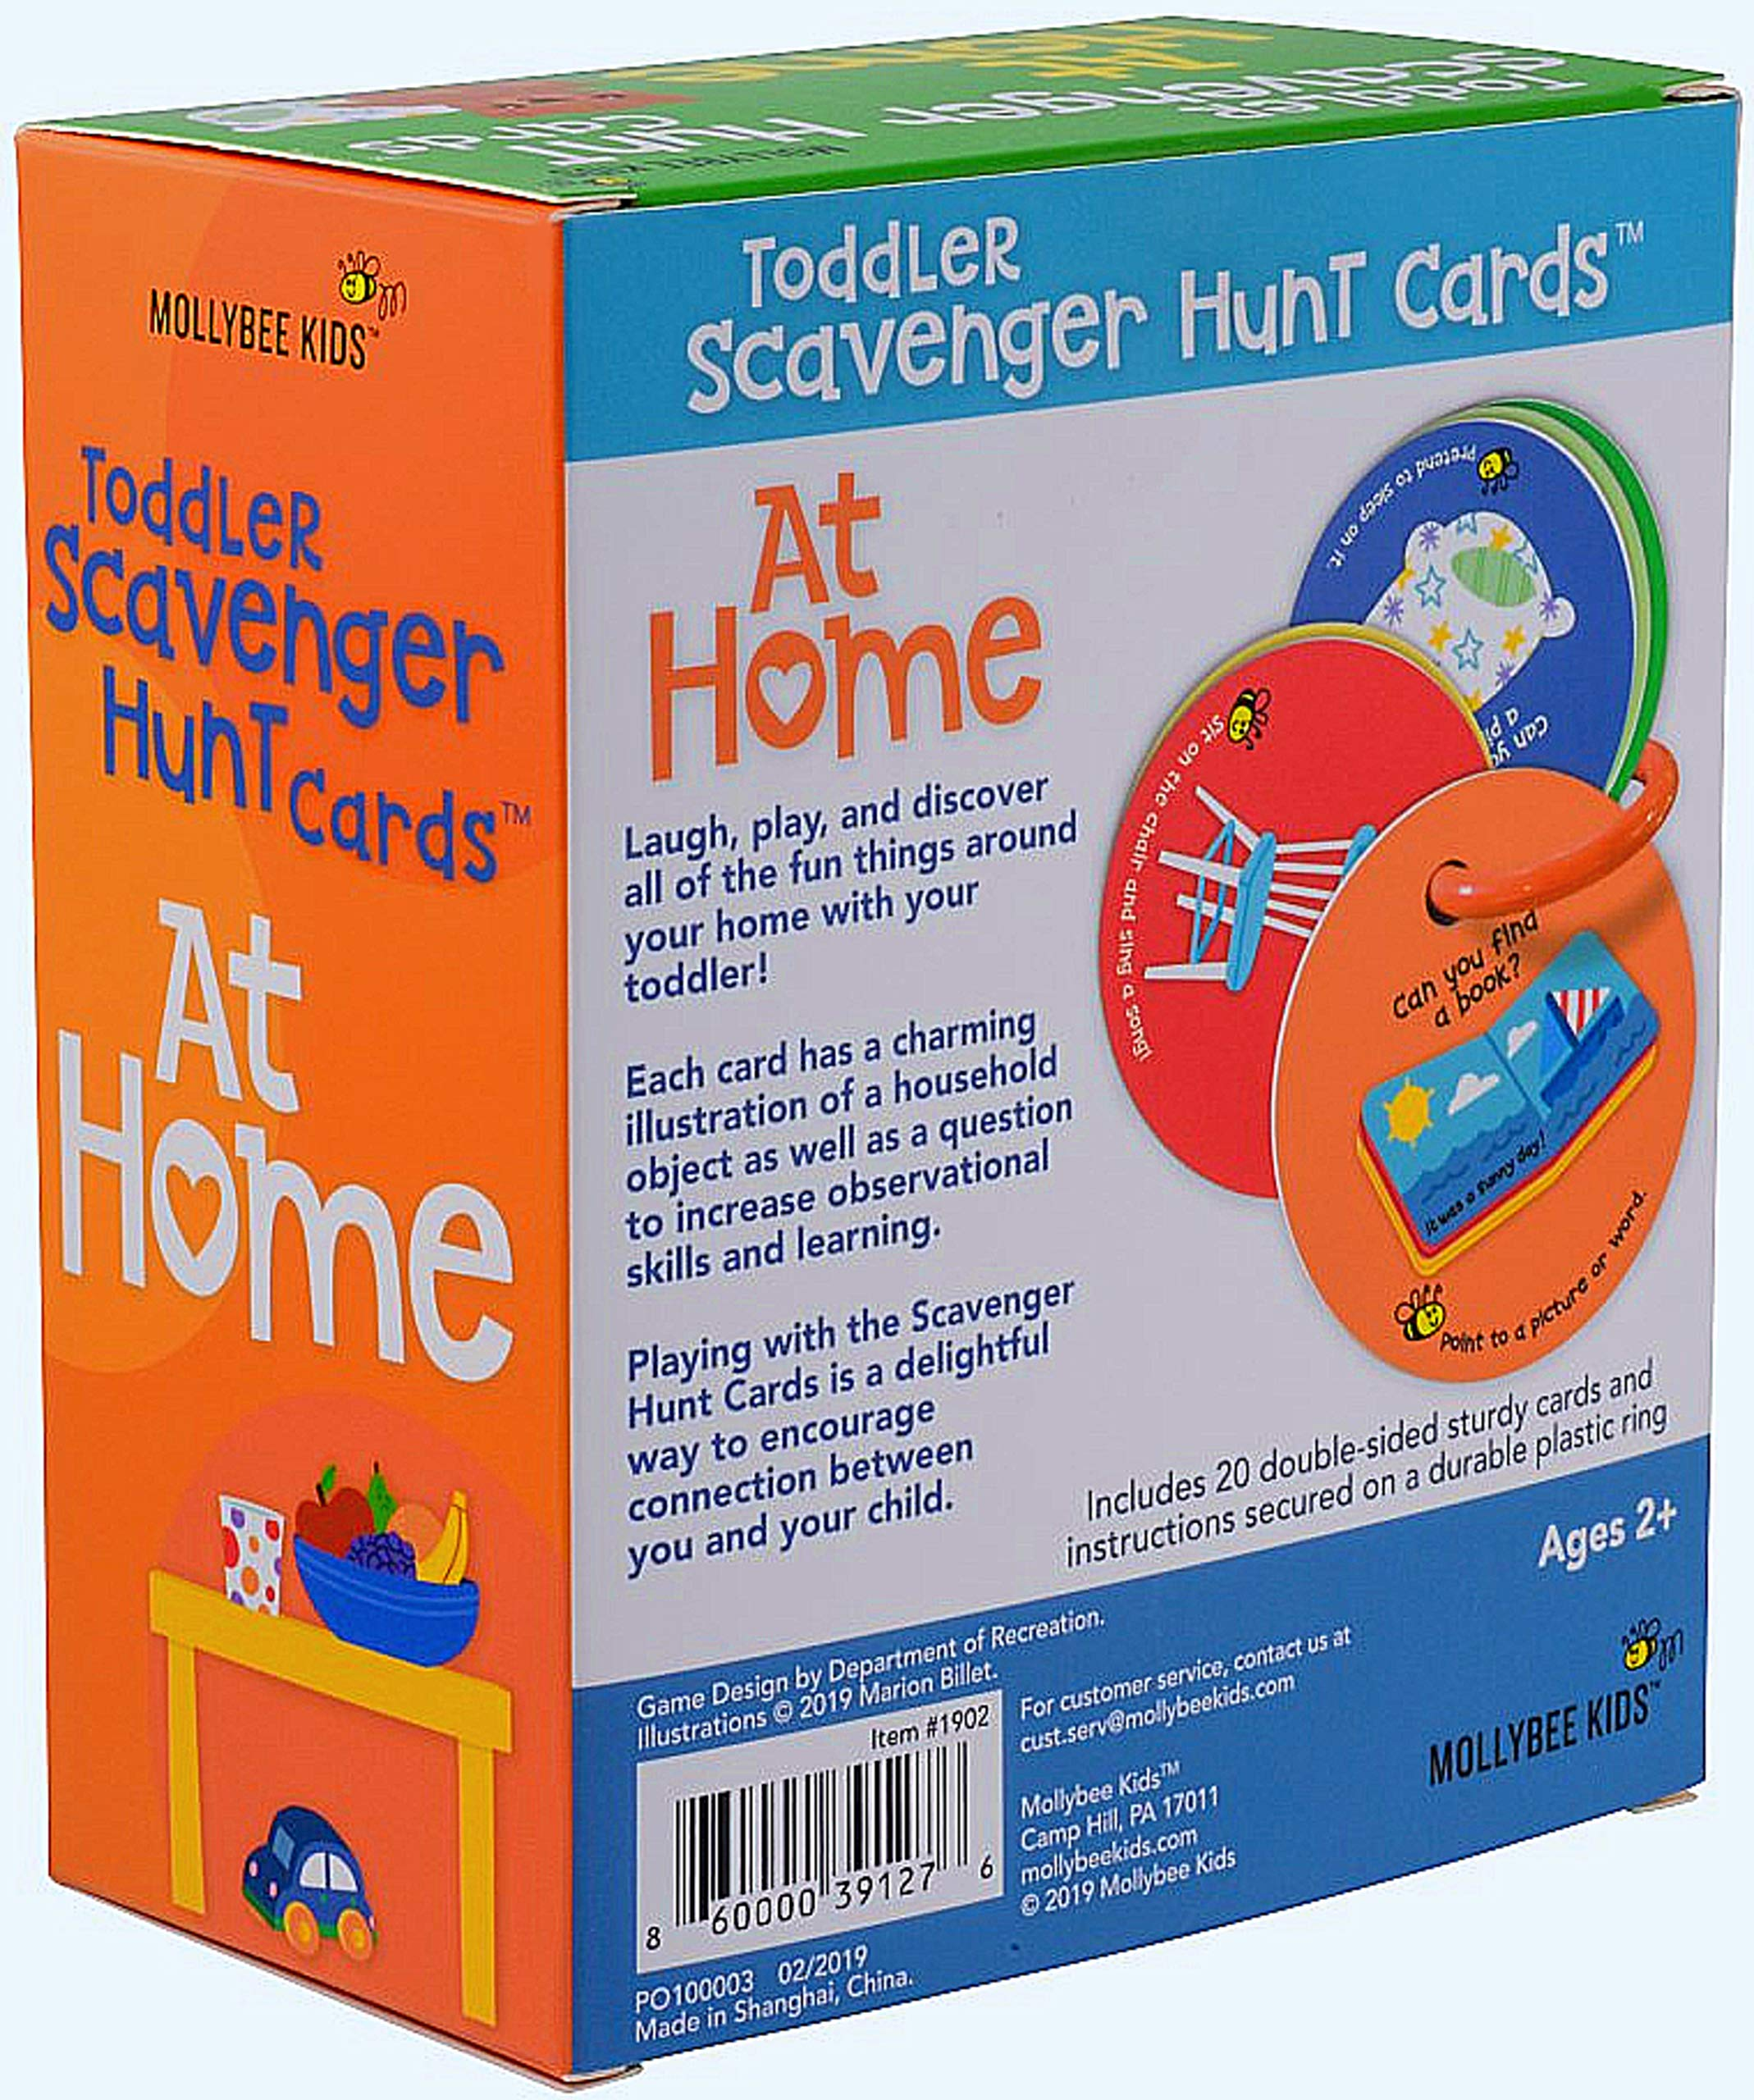 Mollybee Kids Toddler Scavenger Hunt Cooperative Card Game at Home